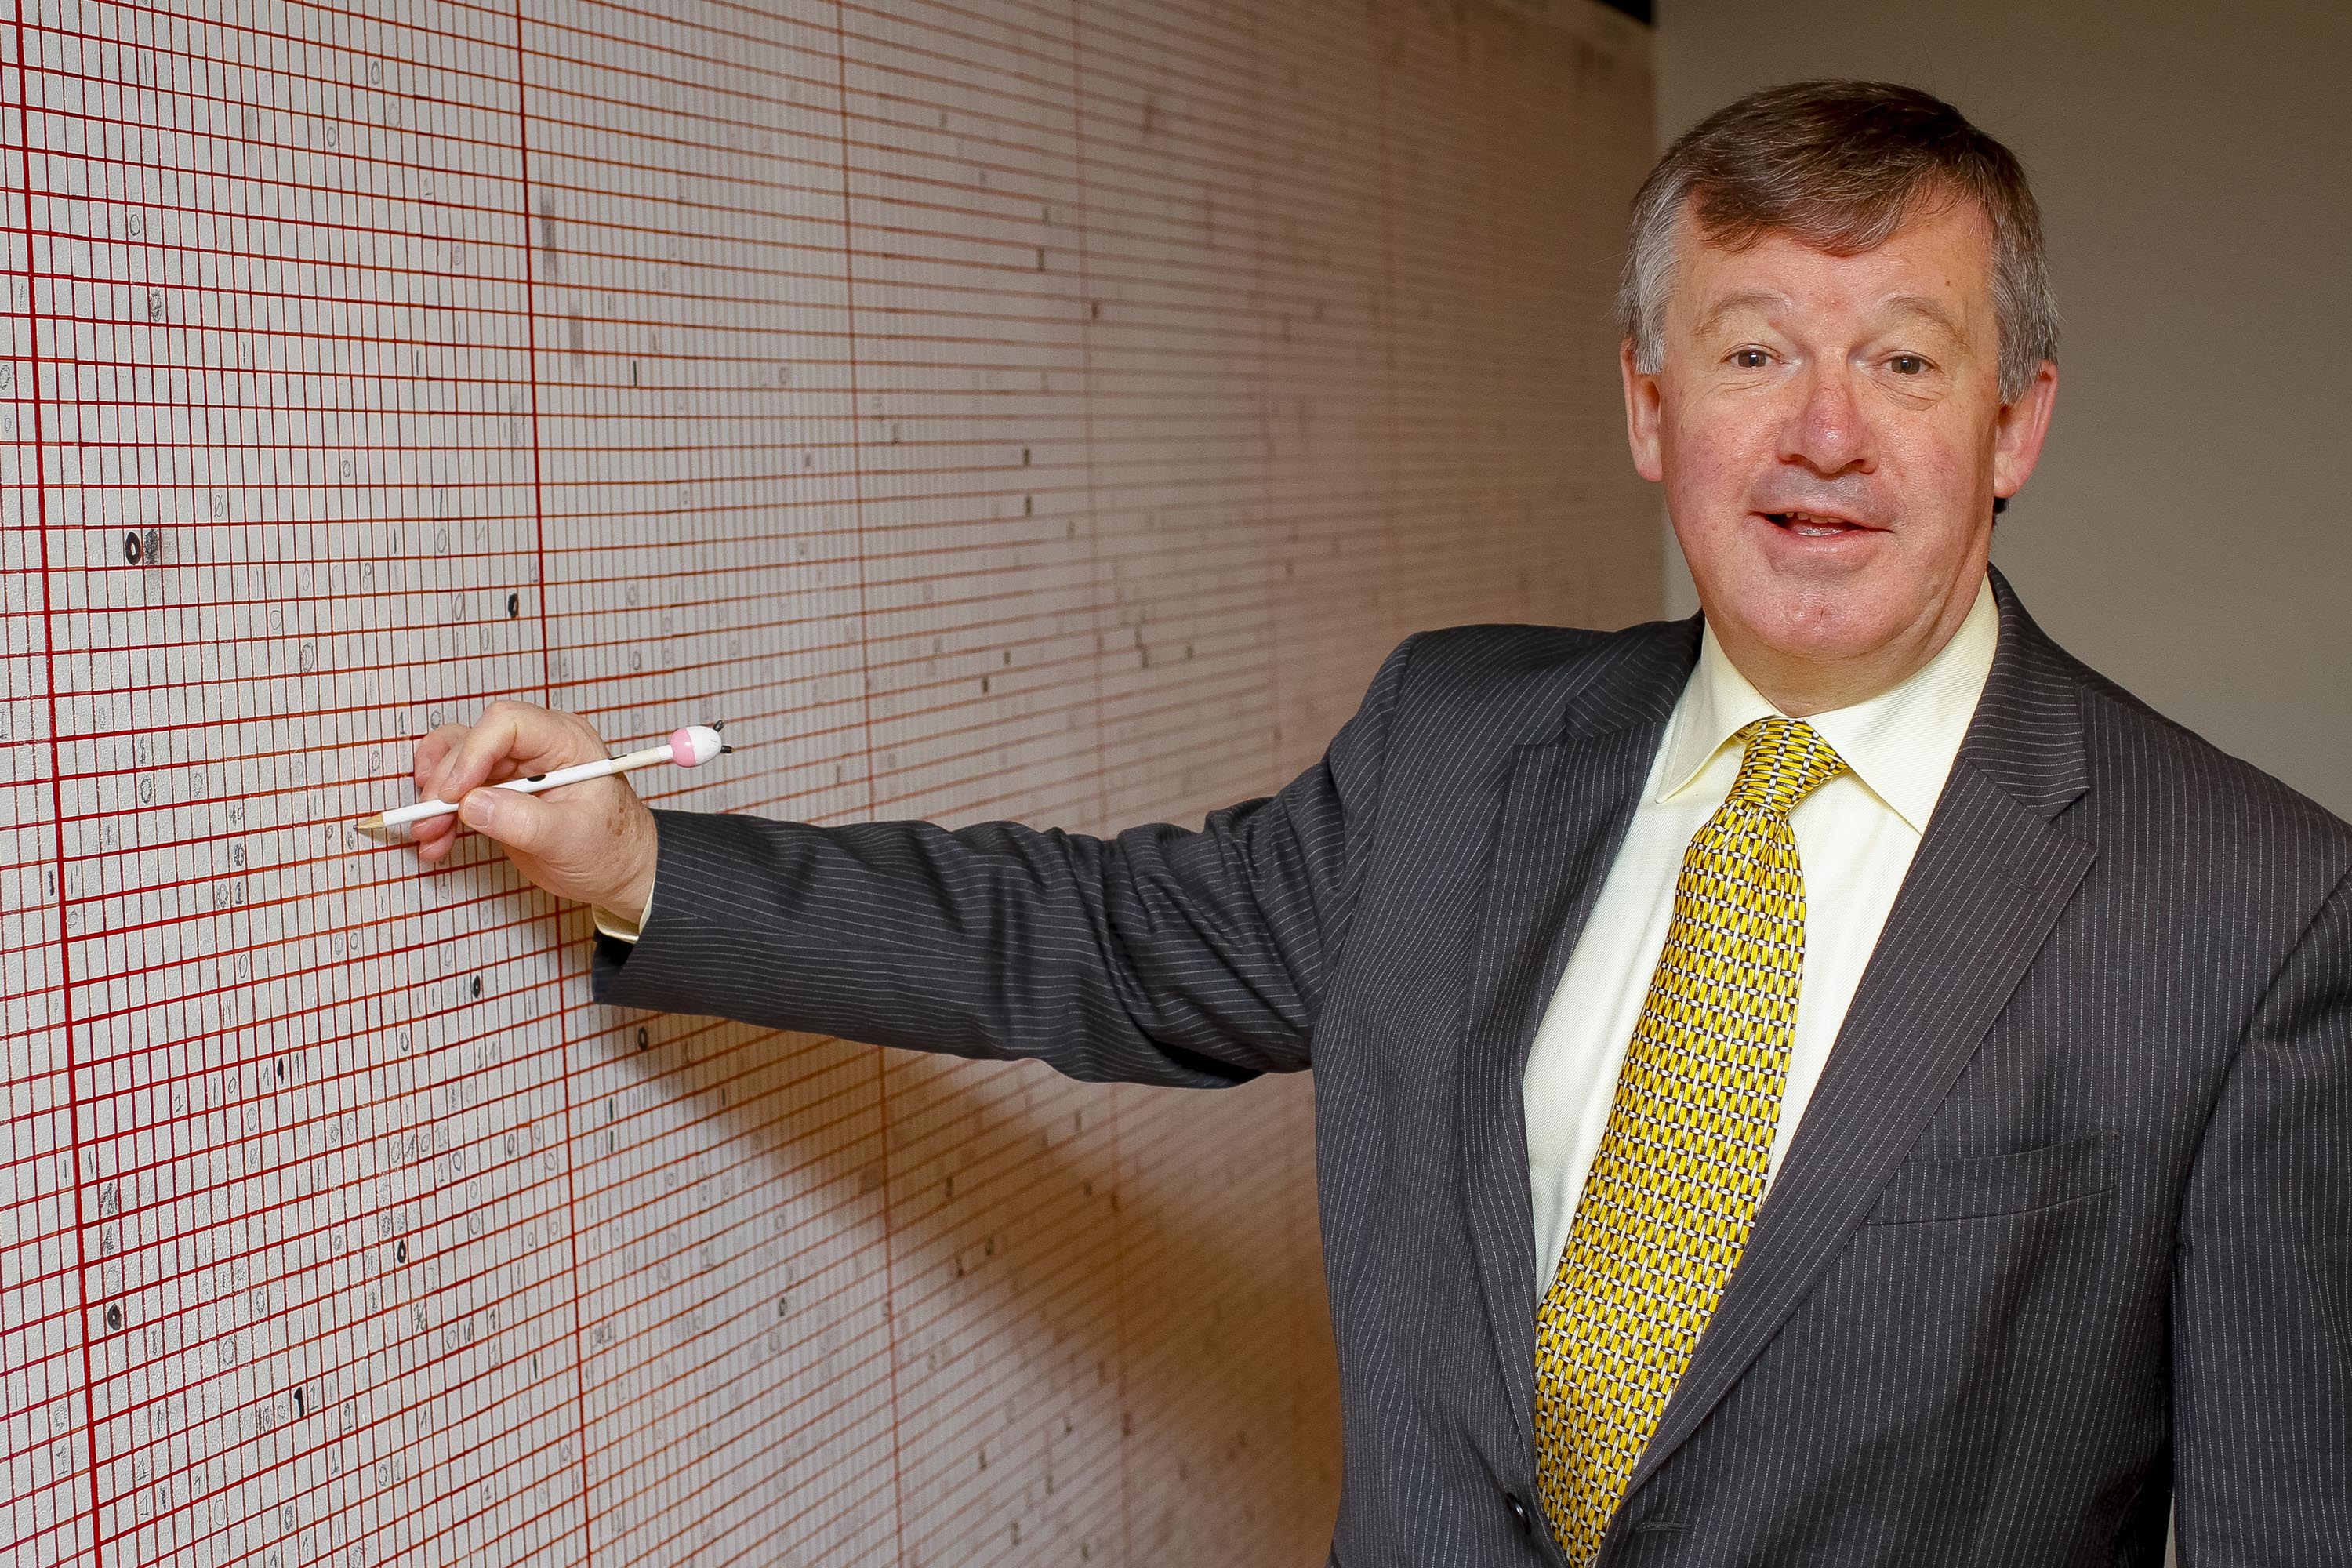 President Michael Murphy, UCC, adds his mark to the Live Statistics Wall at the Glucksman Gallery.